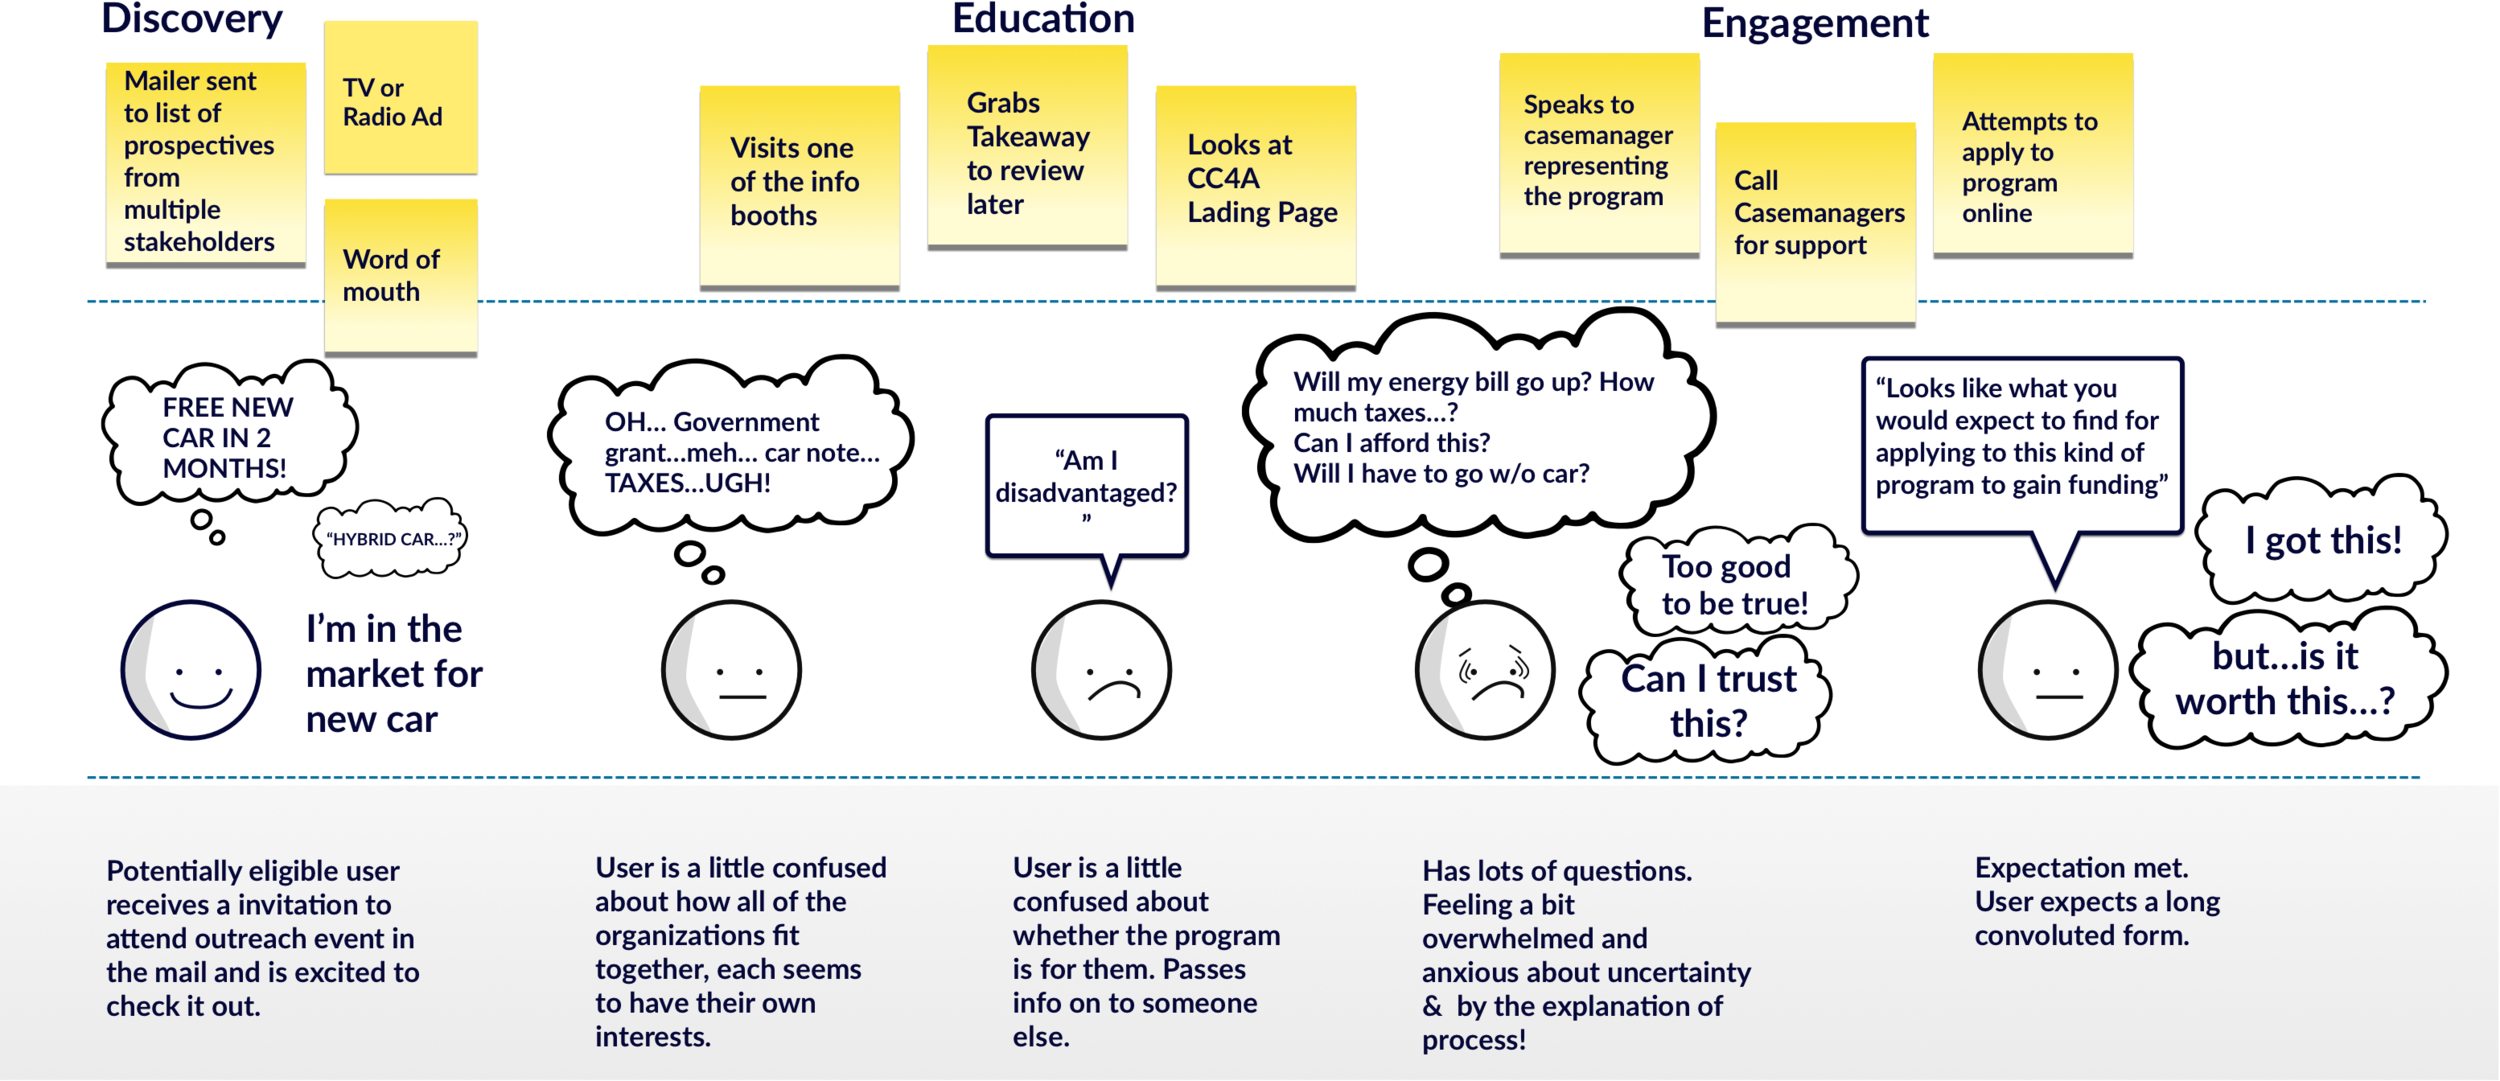 ABOVE:  User journey map shows depletion of motivation is related to miscommunication that leads to distrust.